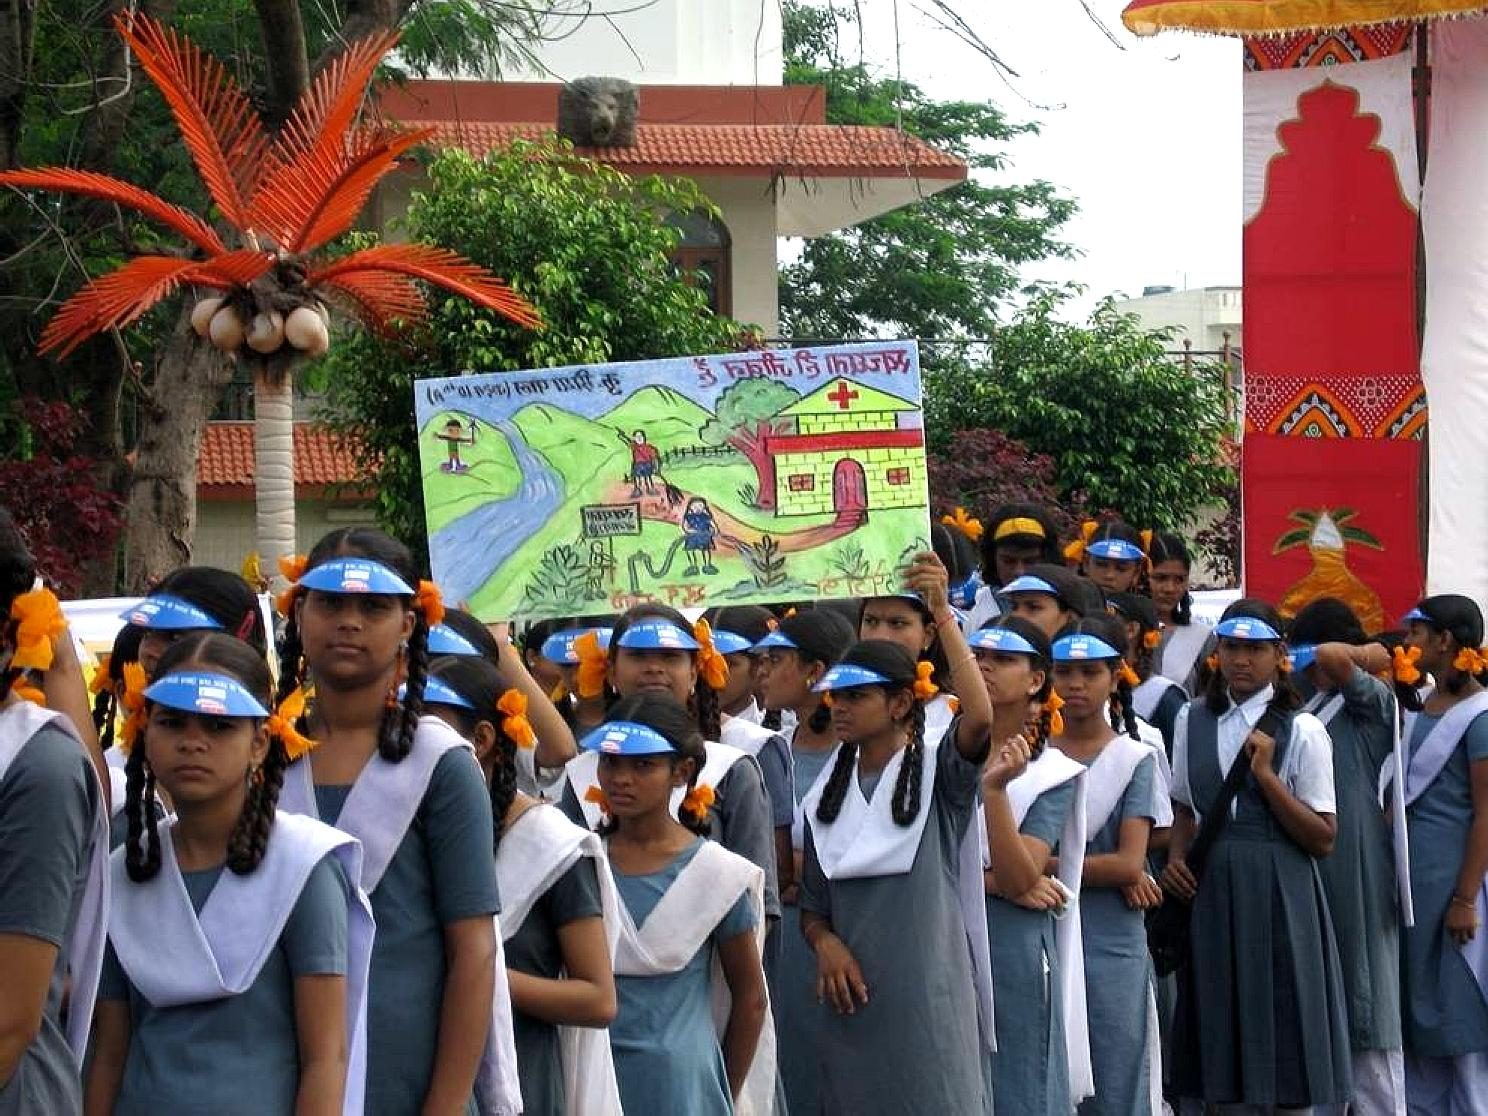 Free picture: Indian, girls, dressed, school, uniforms